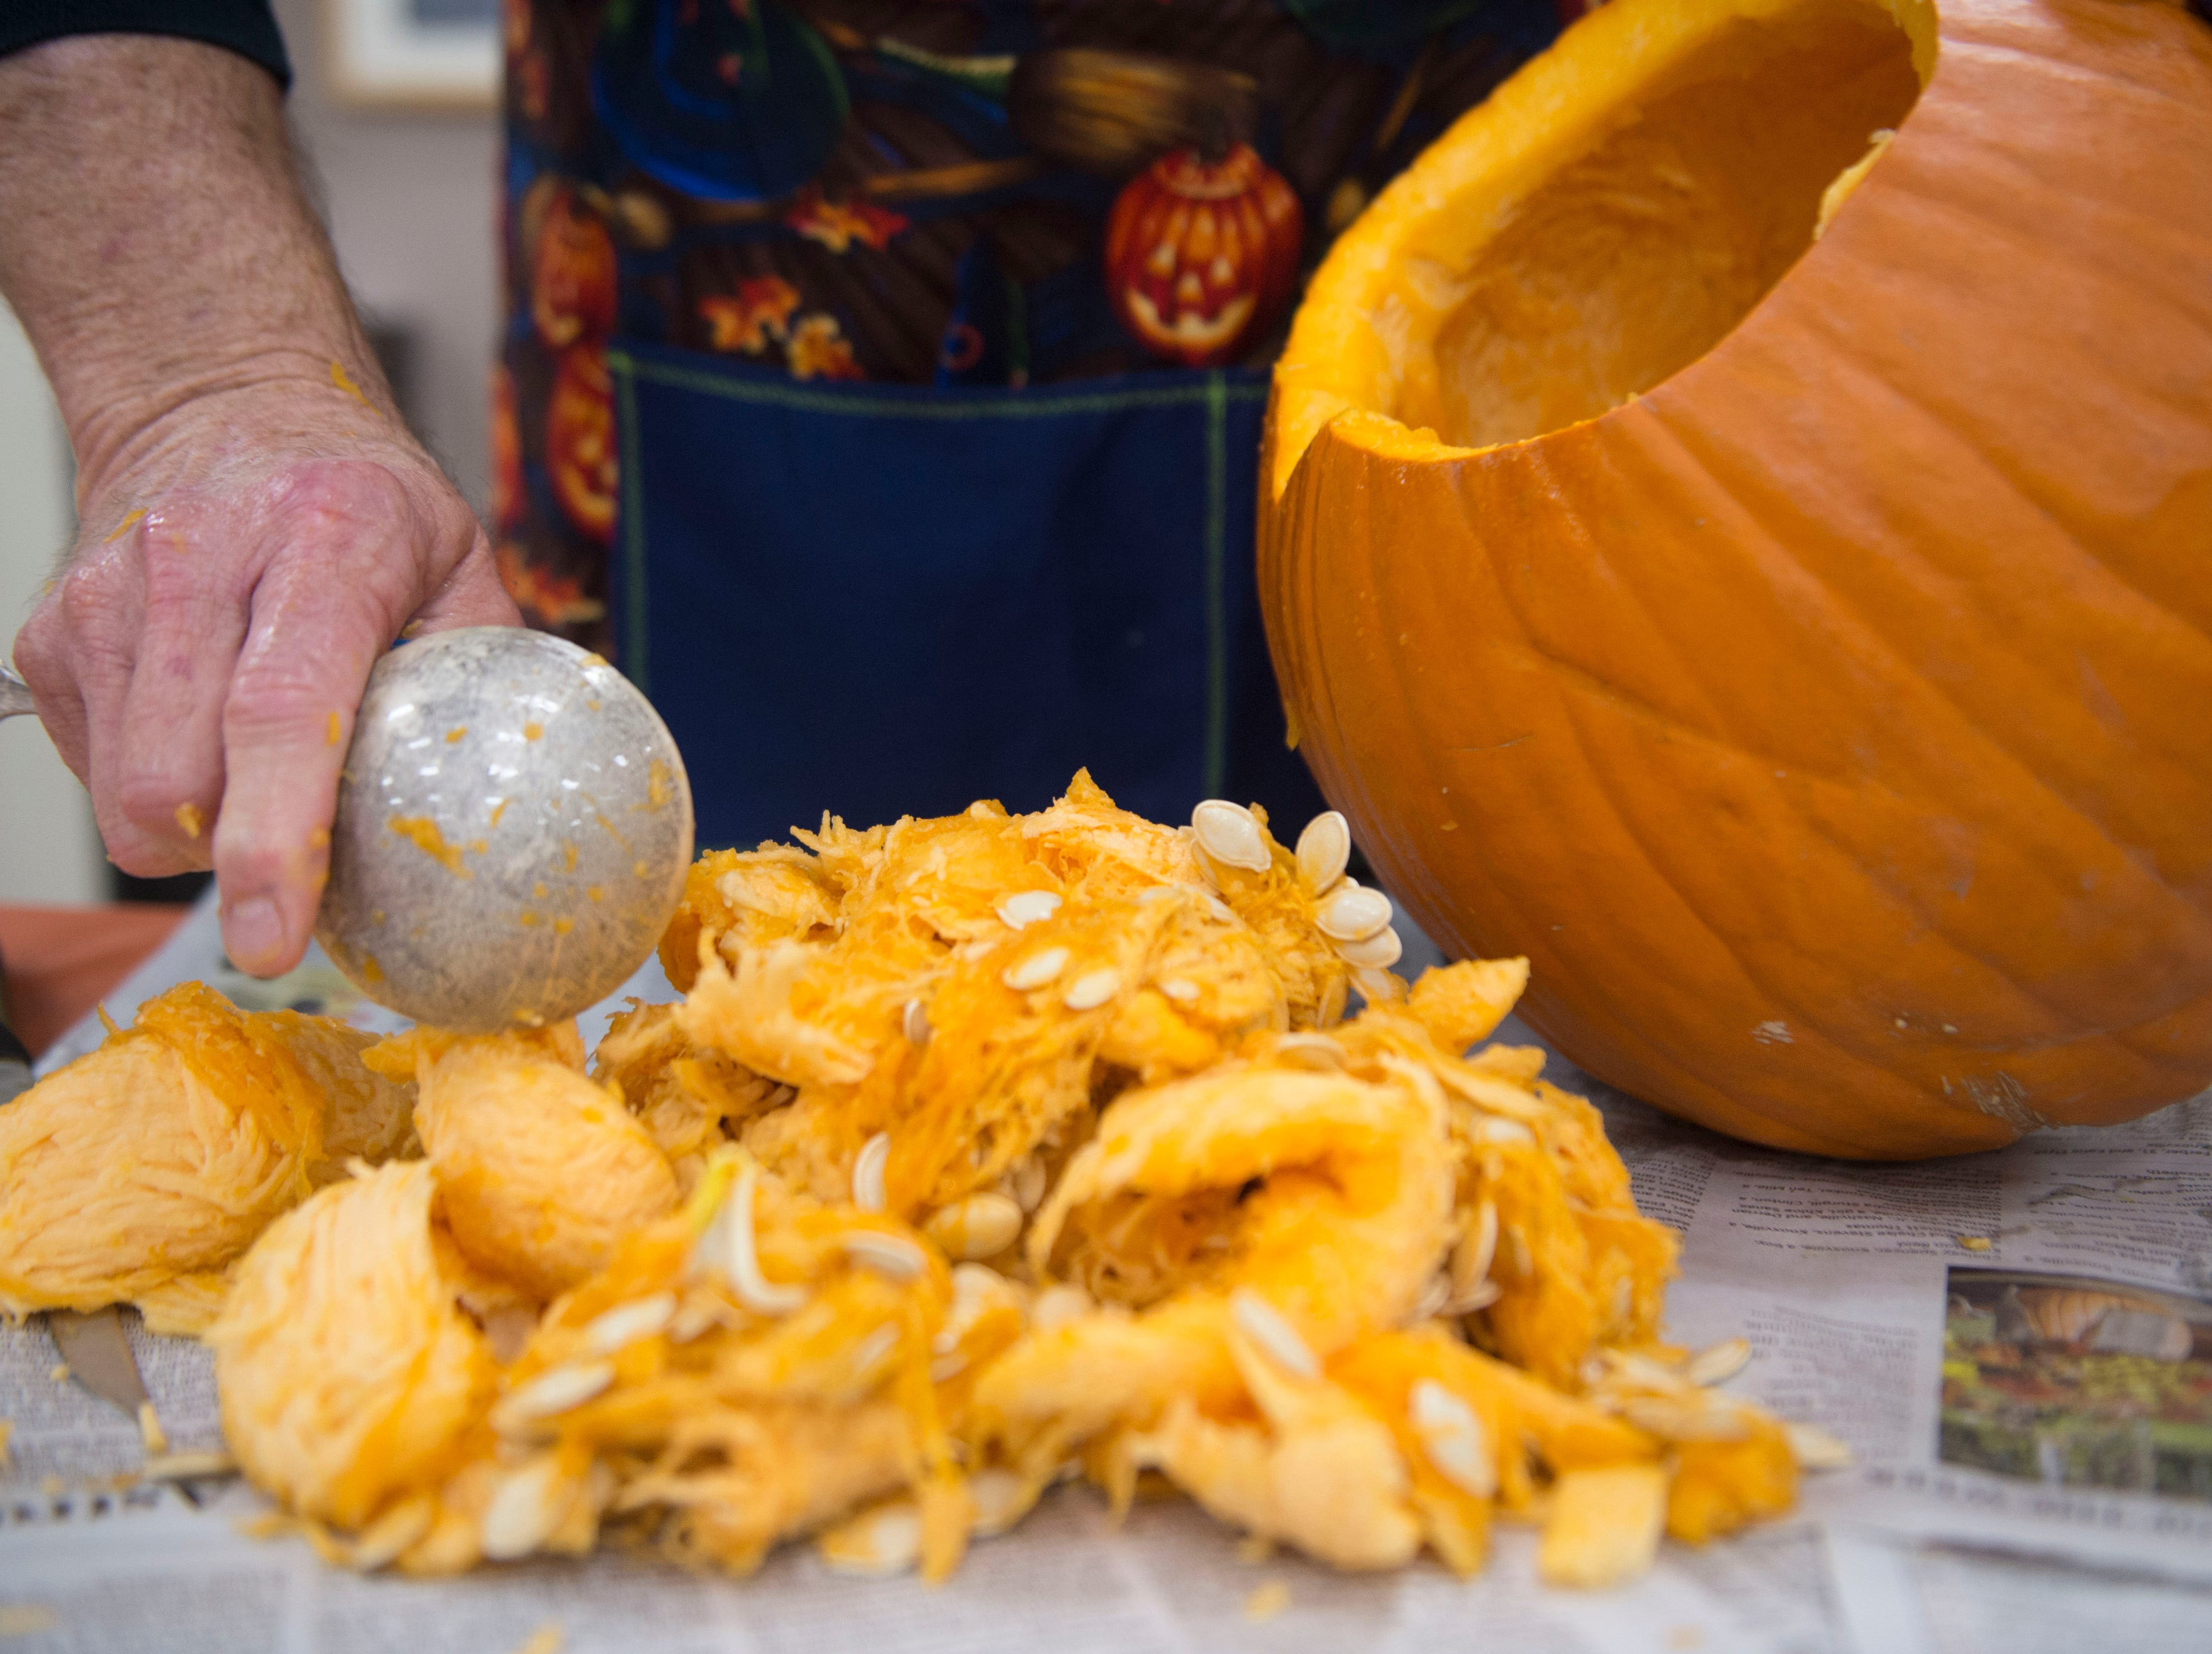 Artist Ken Clayton, also know as Dr. Carvinstein scoops the seeds out of a pumpkin he is carving at the Fountain City Art Center, Tuesday, Oct. 16, 2018. Clayton has been carving for over 50 years.